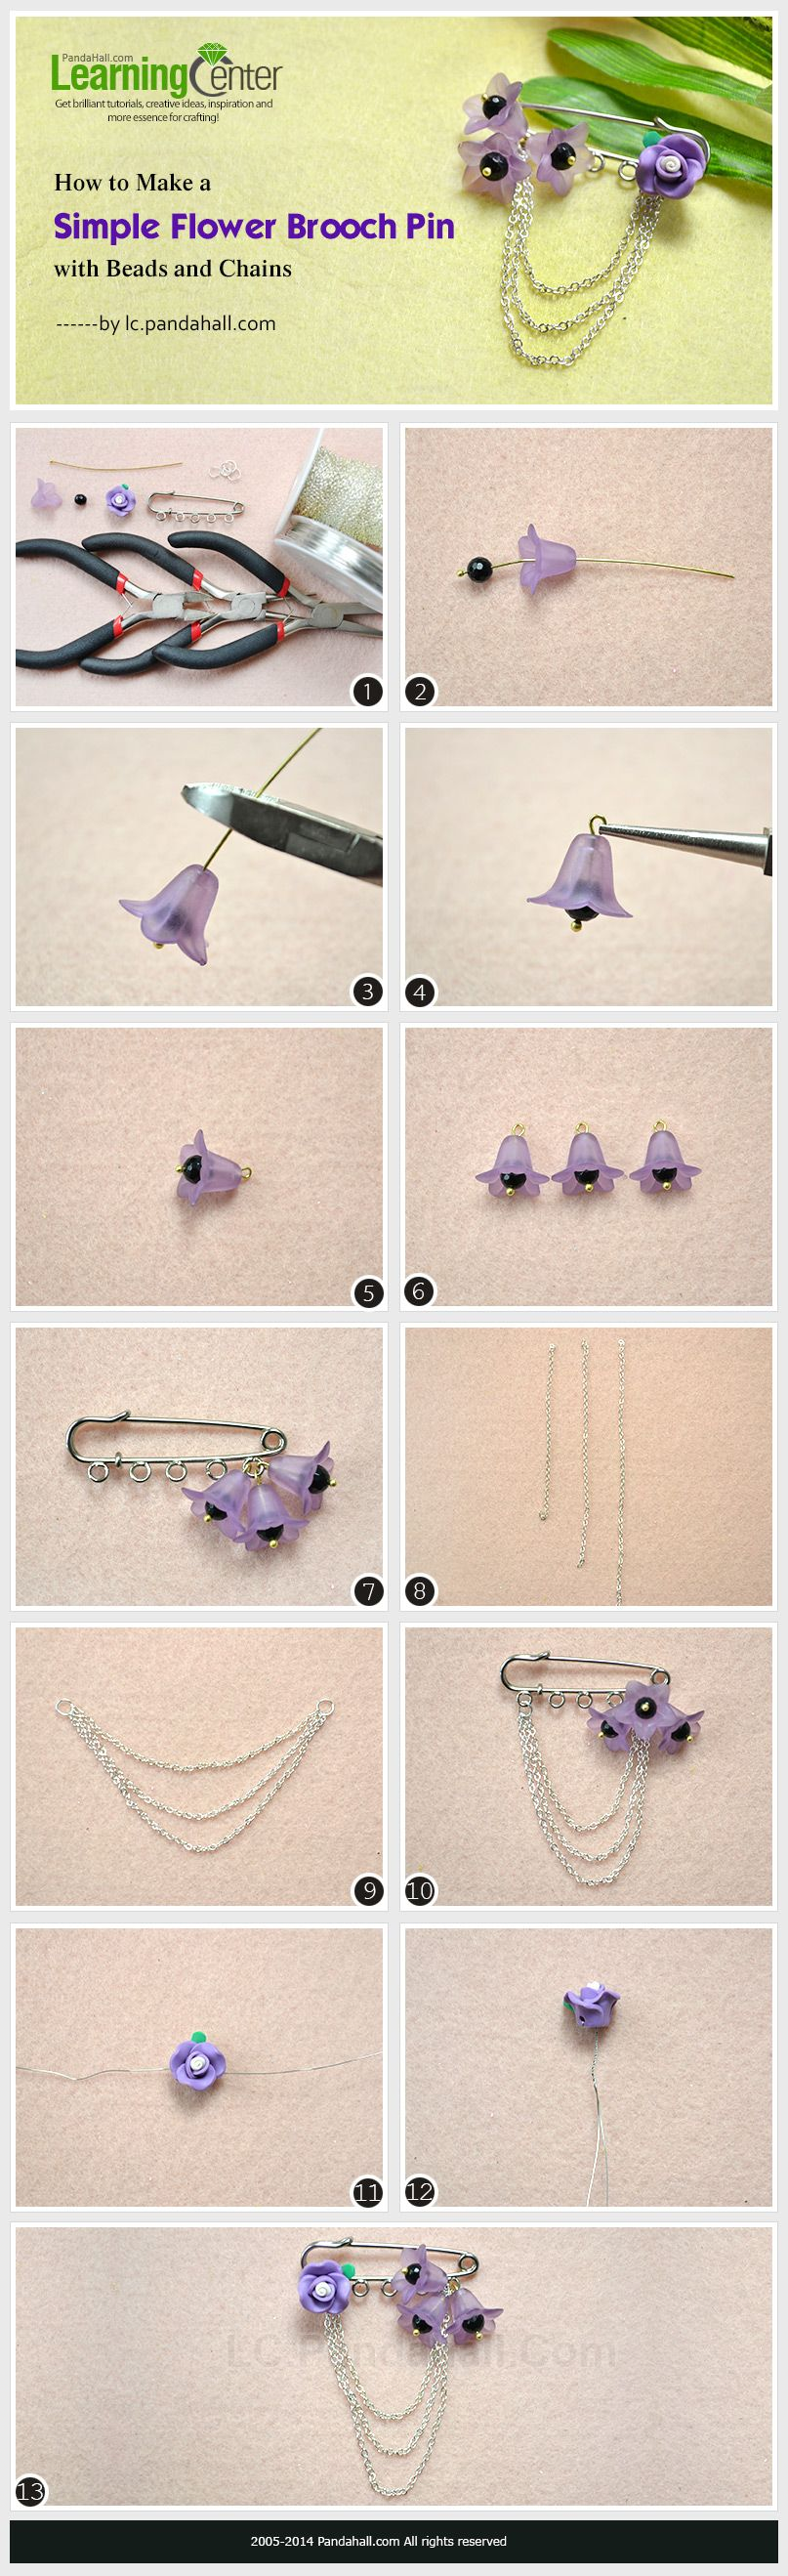 a1a3f499d6405 How to Make a Simple Flower Brooch Pin with Beads and Chains ...